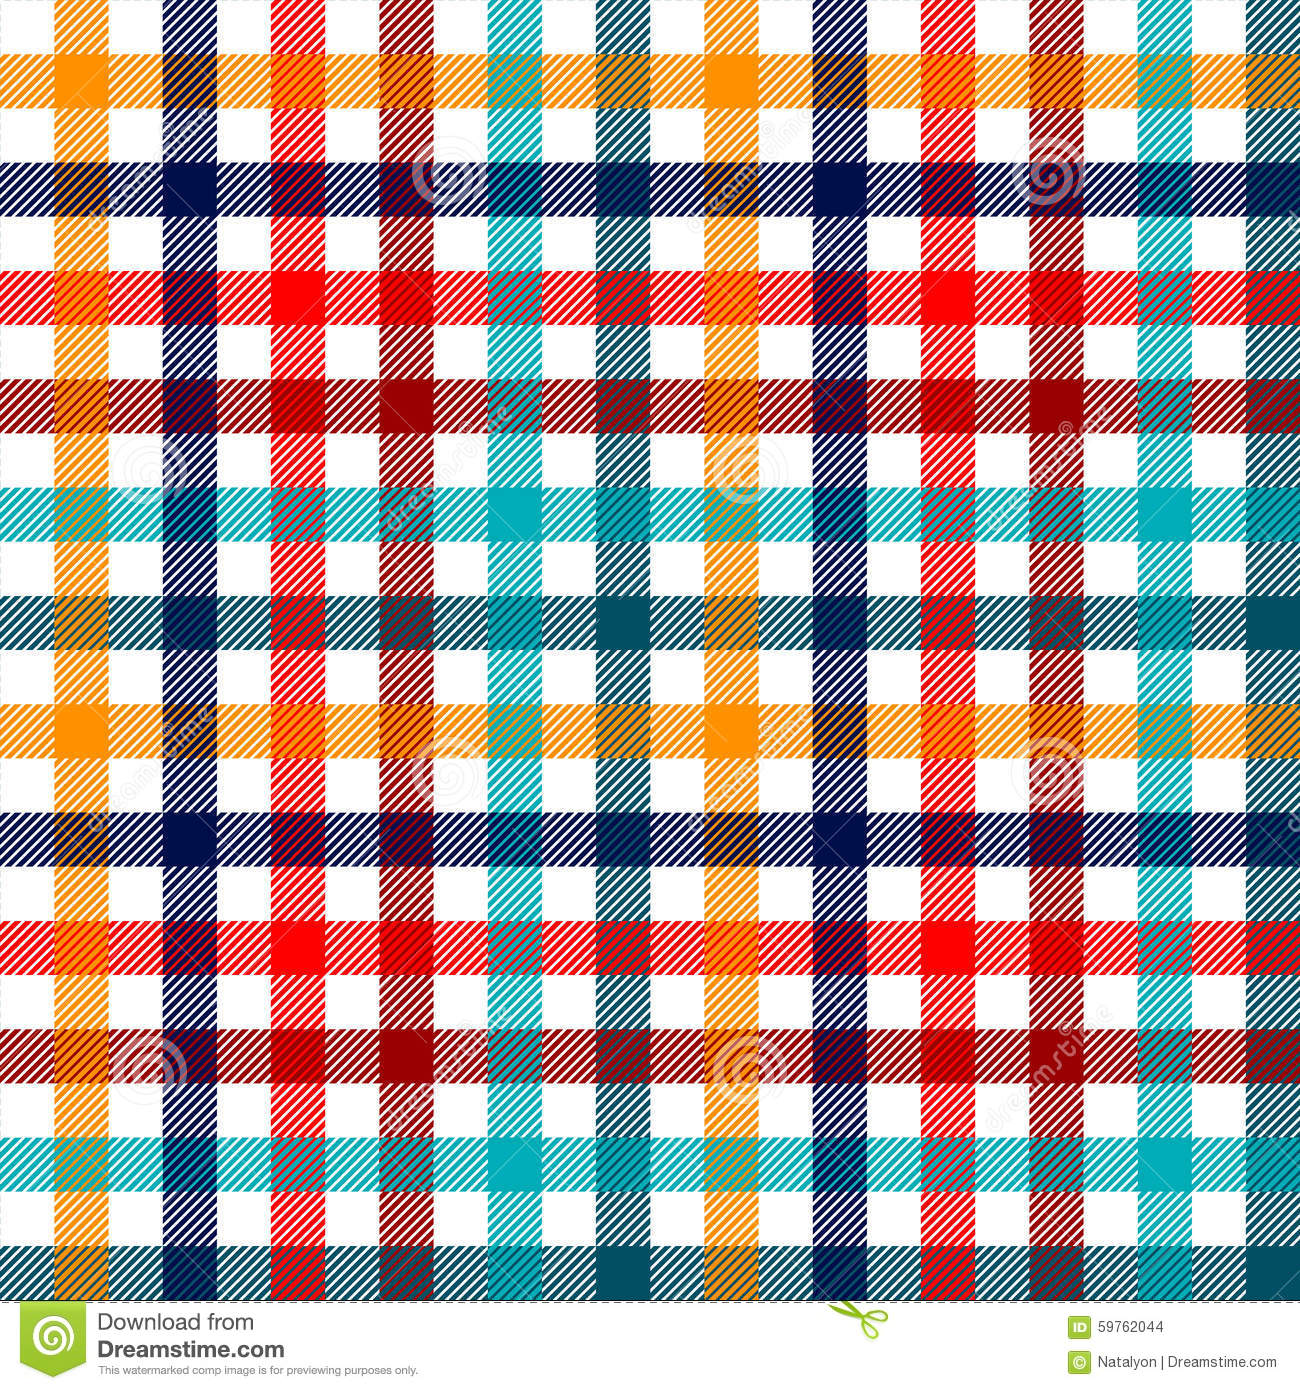 Colorful checkered gingham plaid fabric seamless pattern in blue white red and yellow, print